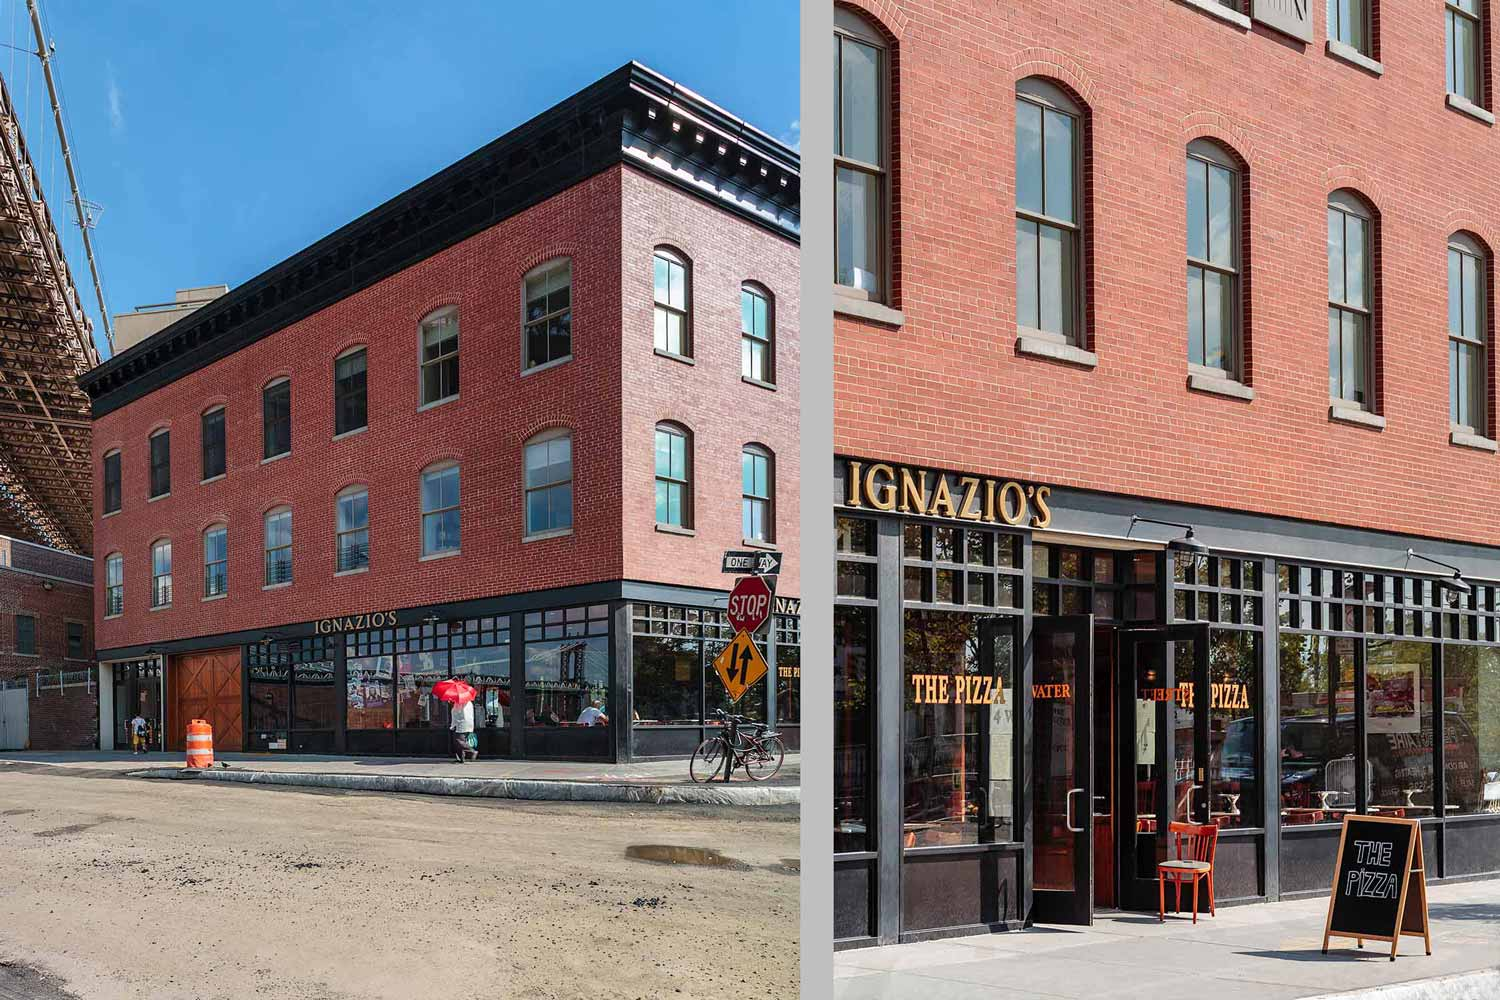 NYC Landmarks Preservation Commission-approved historic rebuild fully glazed storefront.